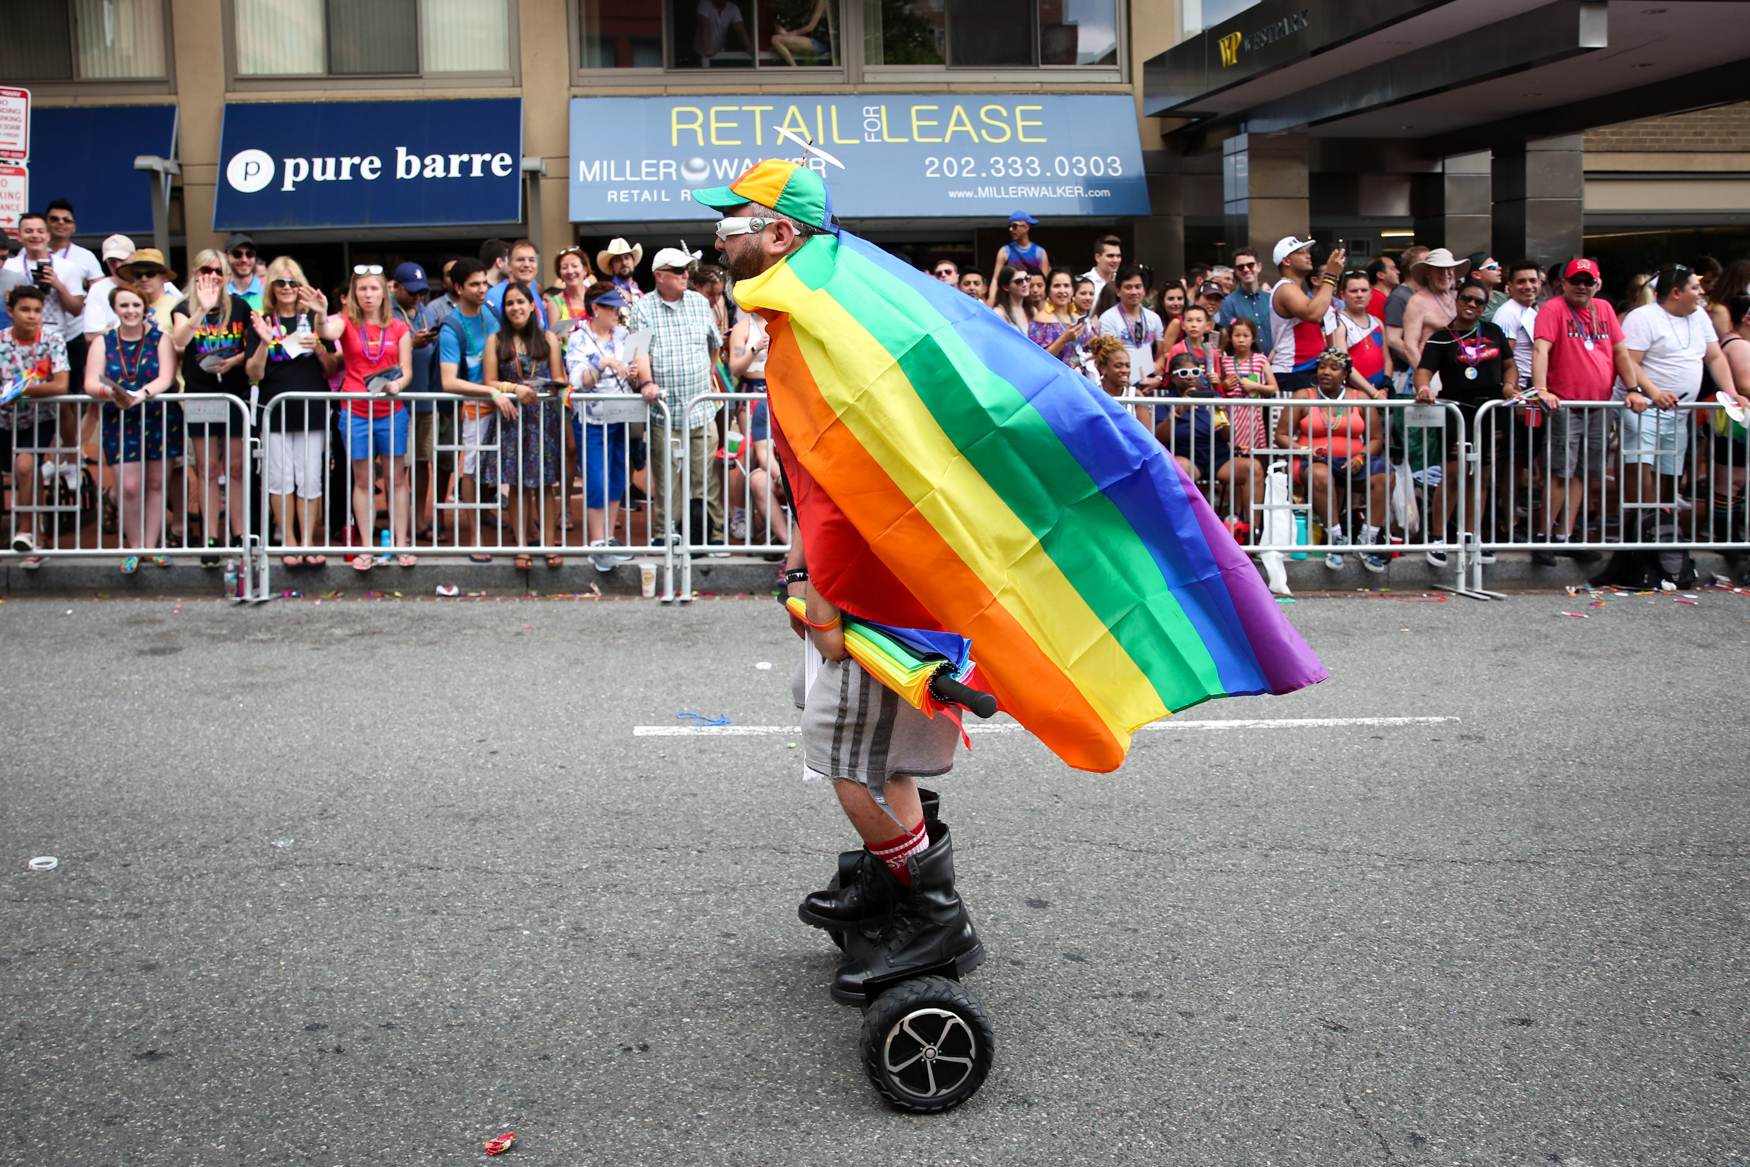 Thousands of members of the LGBTQ+ community and their allies hit the streets around Dupont Circle for the annual pride parade. Those who weren't marching cheered on the sidelines or danced in celebration of the LGBTQ+ community. (Amanda Andrade-Rhoades/DC Refined)